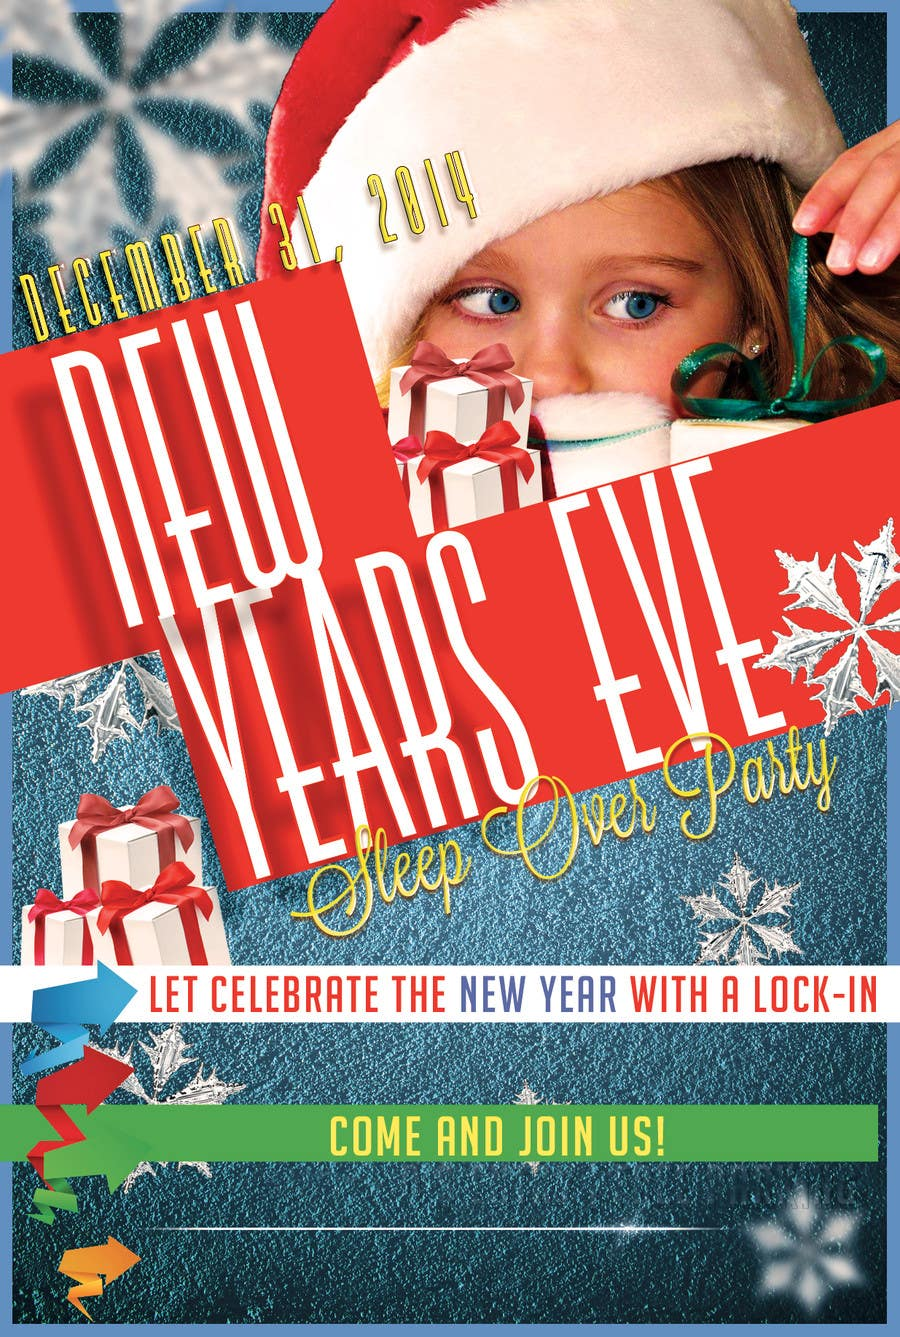 Bài tham dự cuộc thi #                                        9                                      cho                                         Design a Flyer for a New Years Eve Sleep Over Party